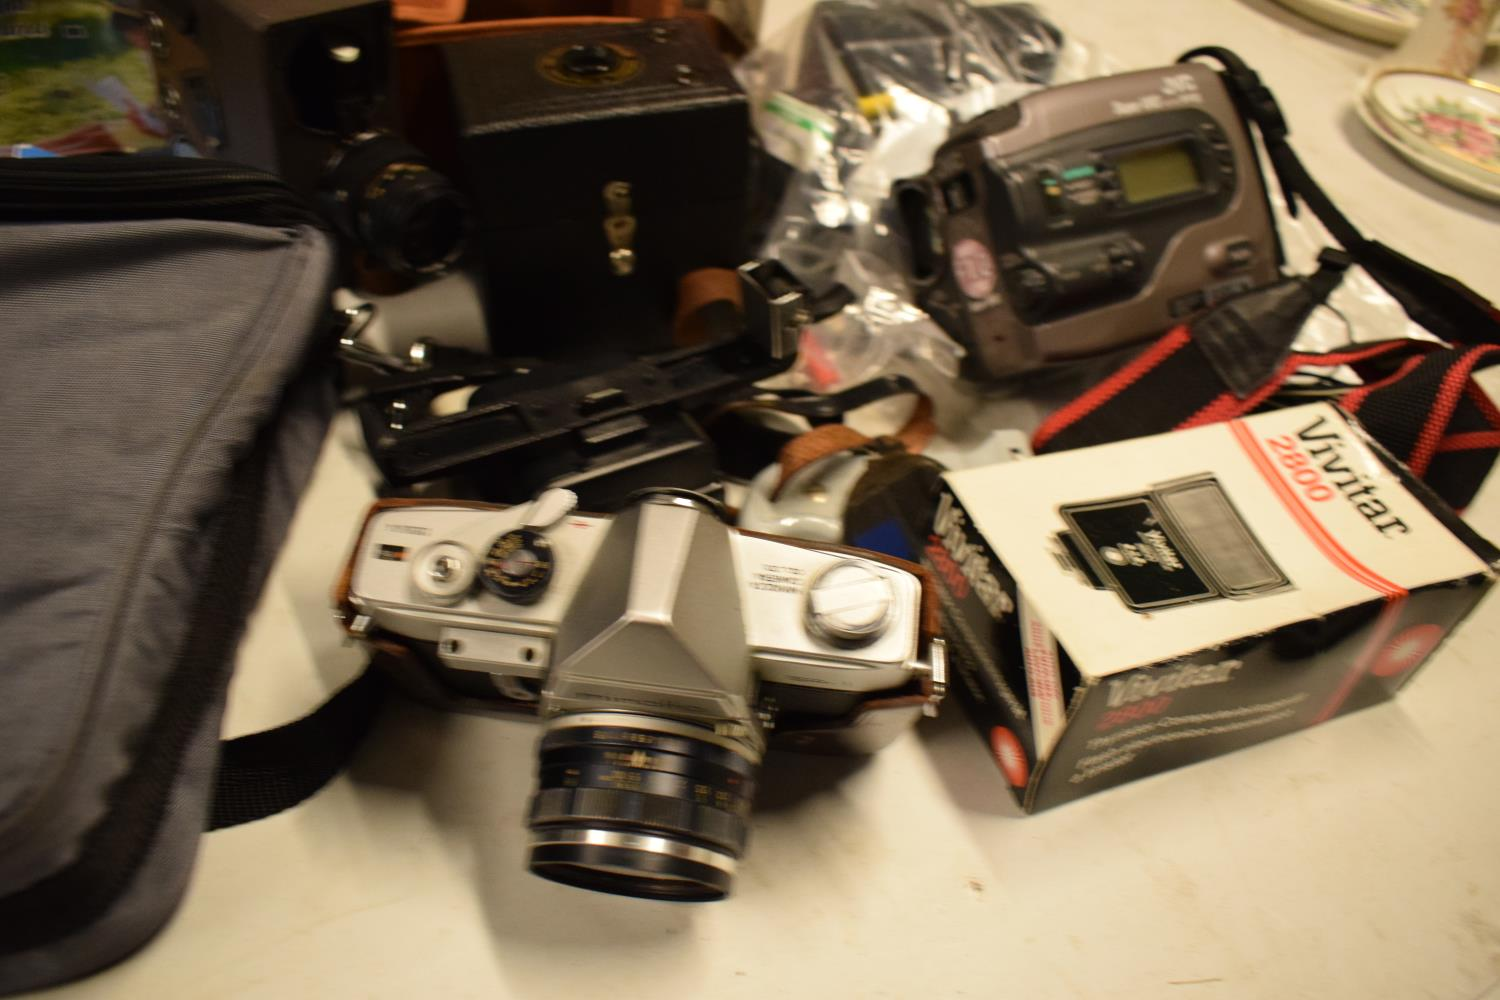 A mixed collection of cameras and accessories to include Kodak, Canon, JVC etc Condition is mixed. - Image 3 of 7